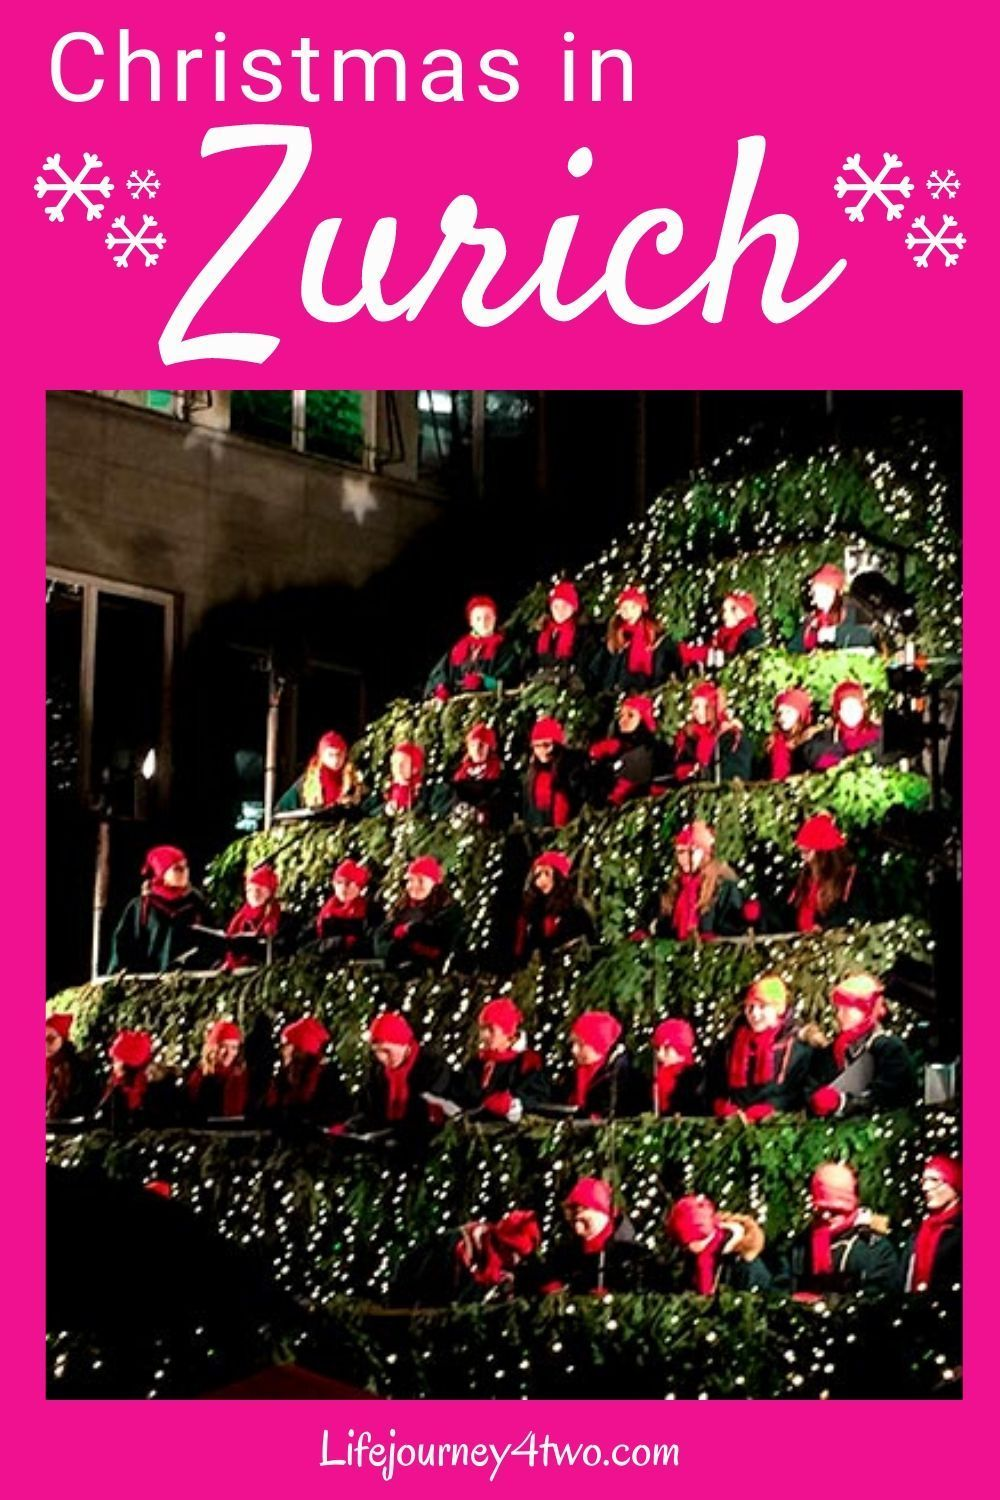 The Best Christmas Markets In Zurich Switzerland Get Your Christmas Cheer On By Visiting The Top Best Christmas Markets Christmas Travel Europe Winter Travel